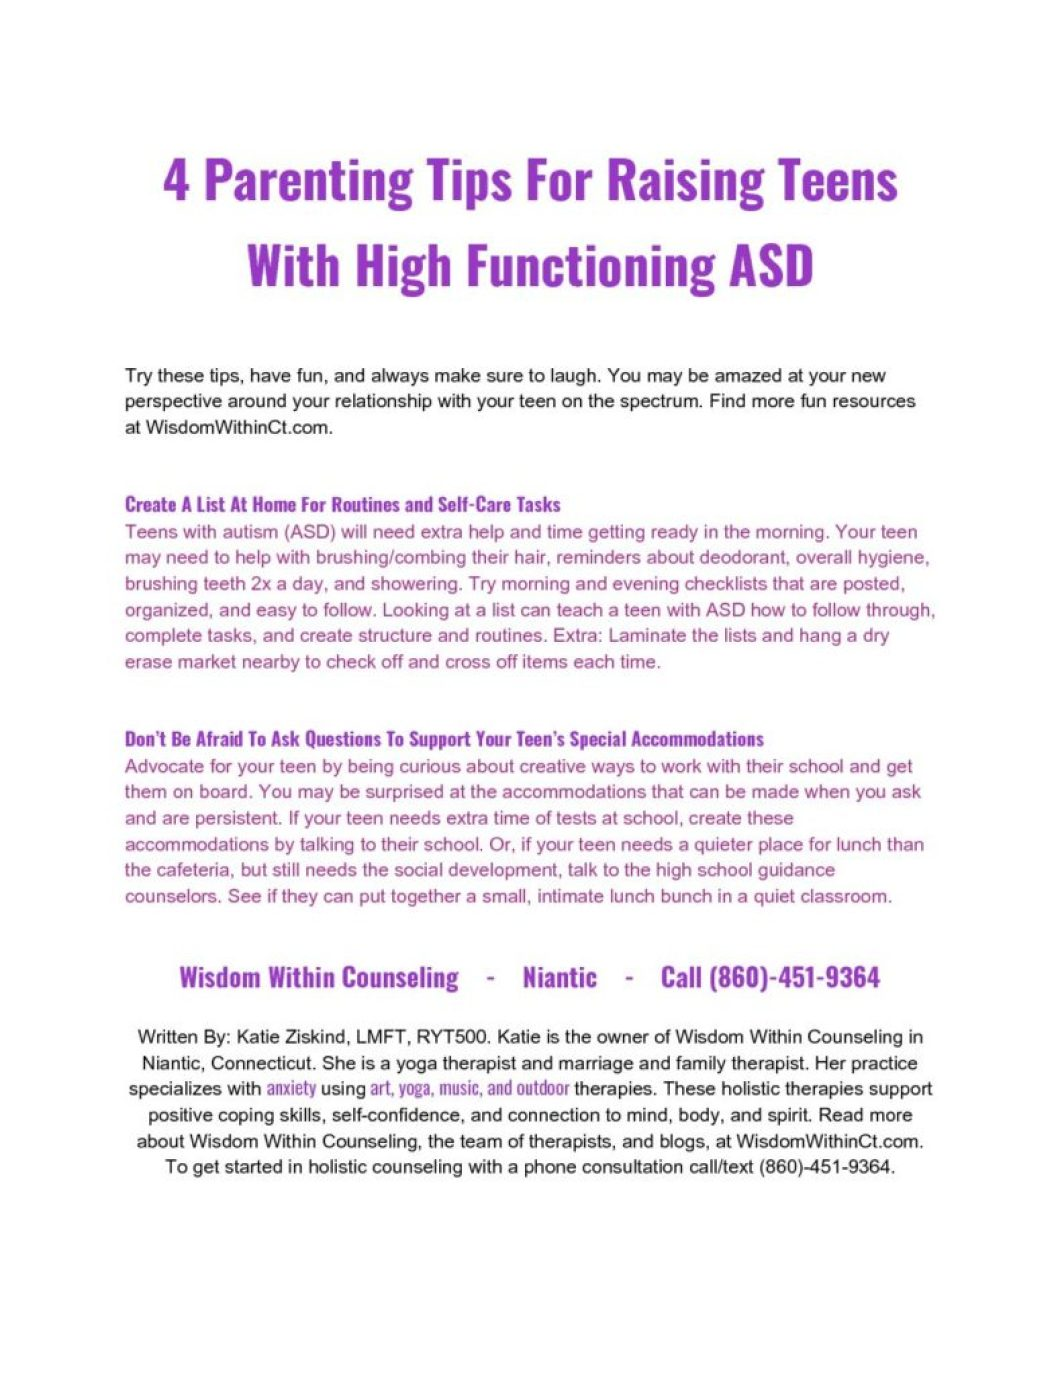 Teens with Autism (ASD) - Wisdom Within Counseling